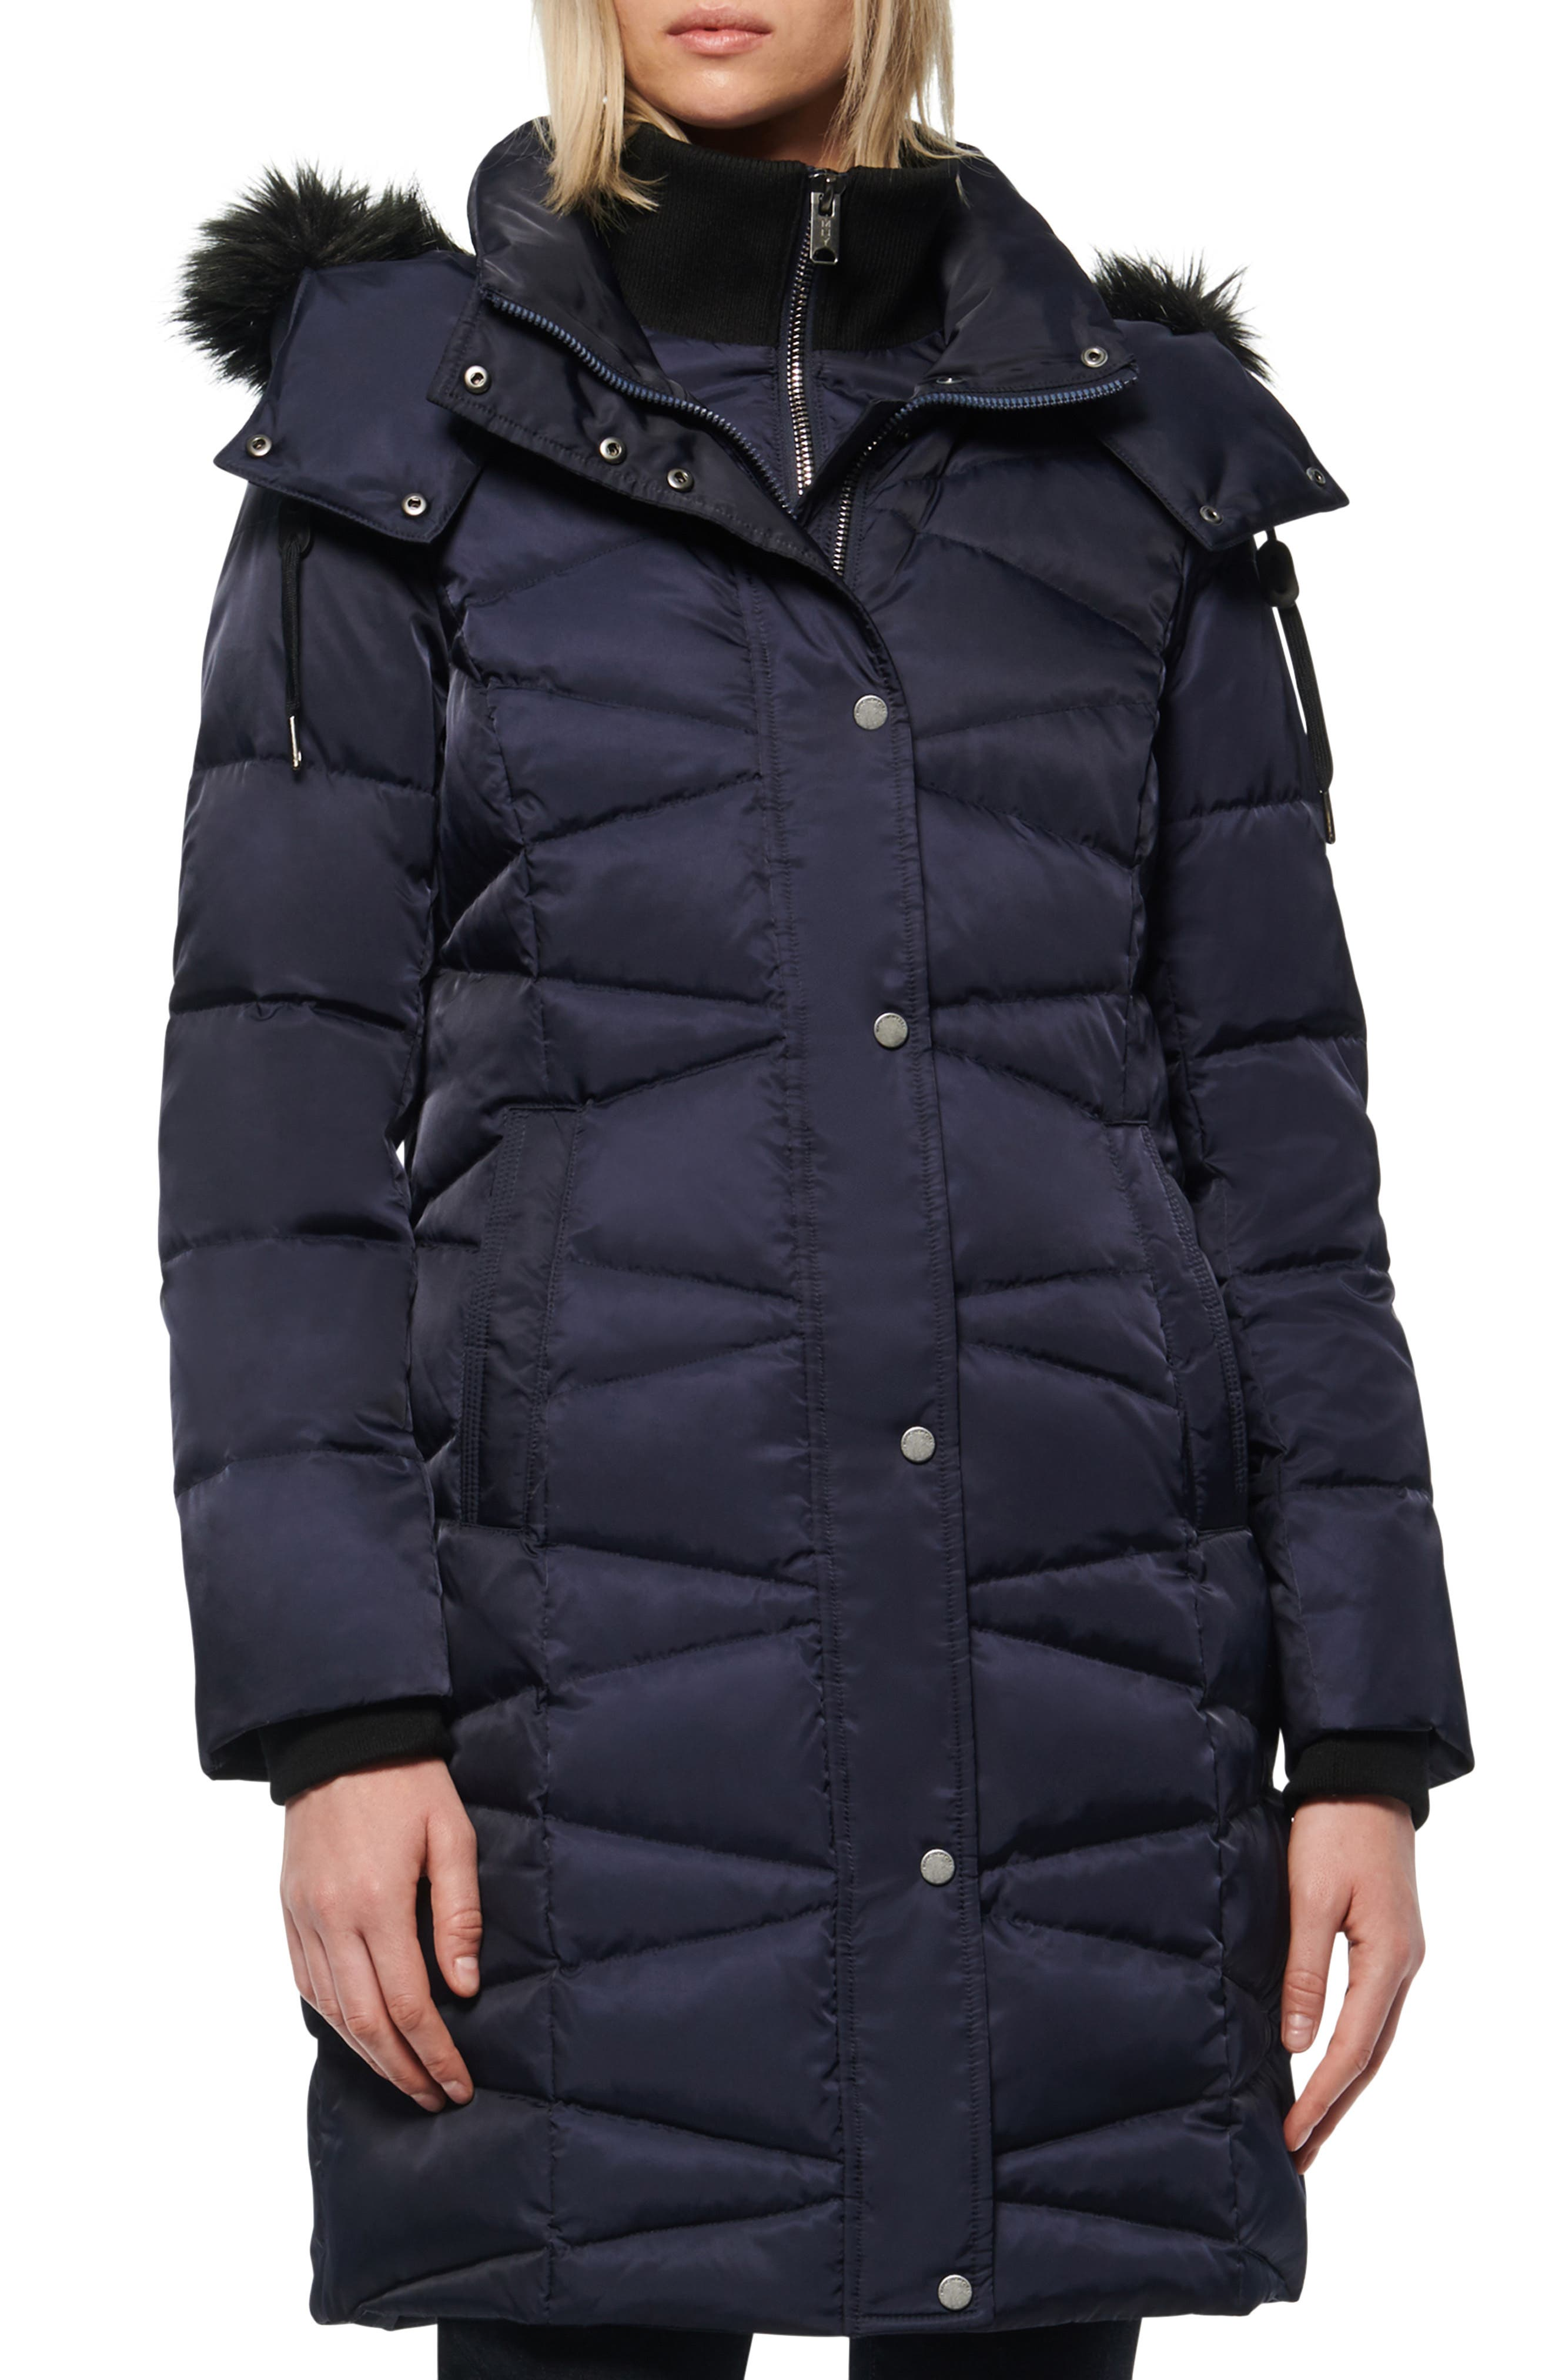 Image of Andrew Marc Malabar Bib Front Faux Fur Trim Quilted Puffer Jacket